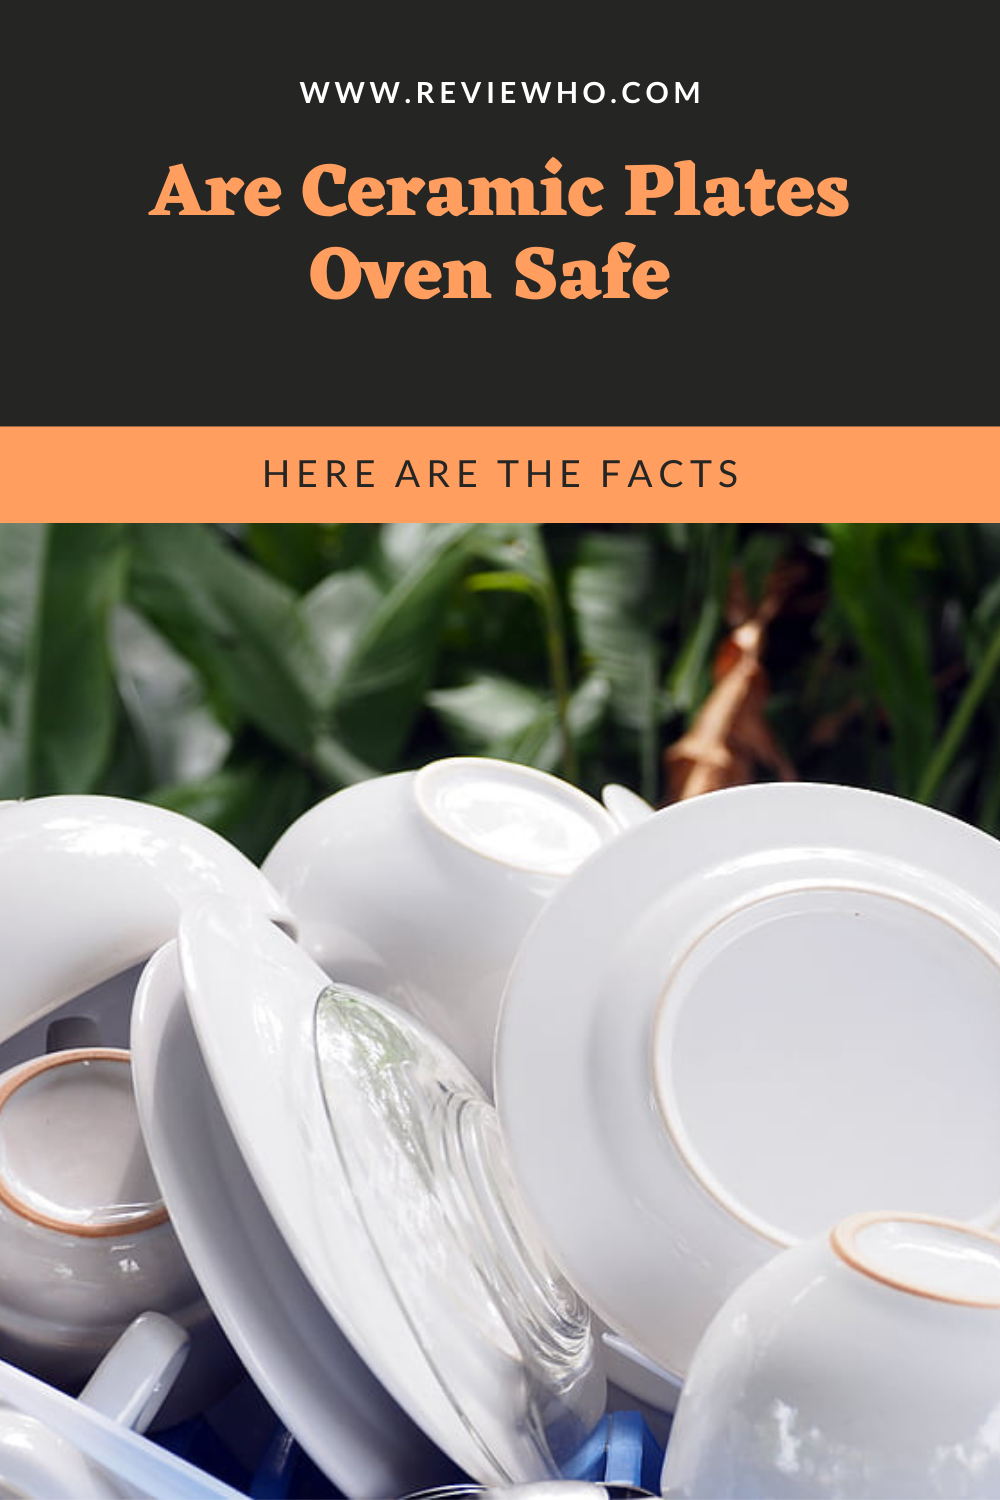 Are Ceramic Plates Oven Safe Here Are The Facts Reviewho In 2020 Ceramic Plates Oven Safe Plates